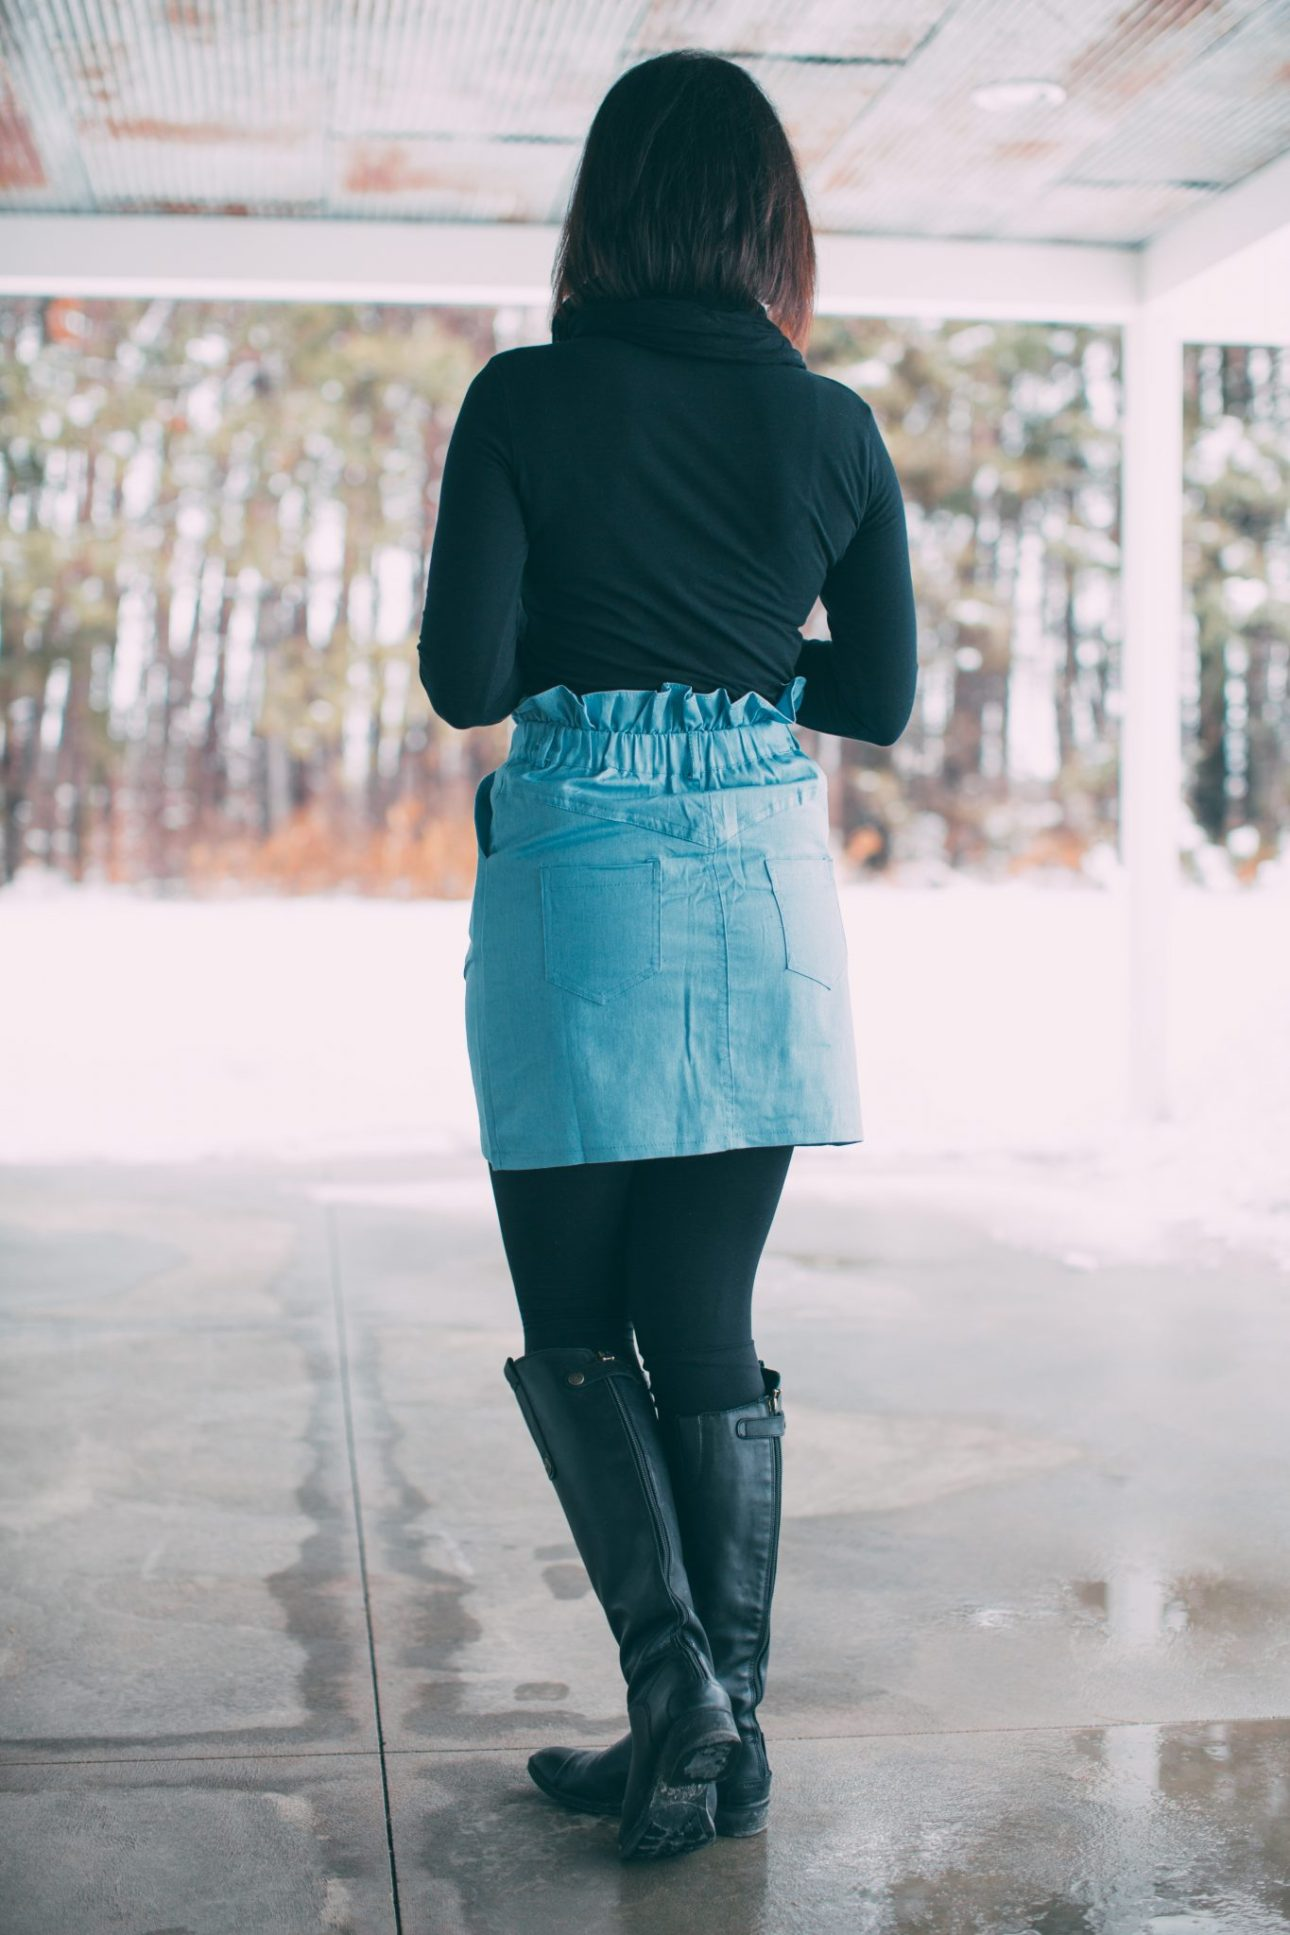 Styling a Denim Skirt With Leggings + Boots for Winter (mini skirt is from Femme Luxe)